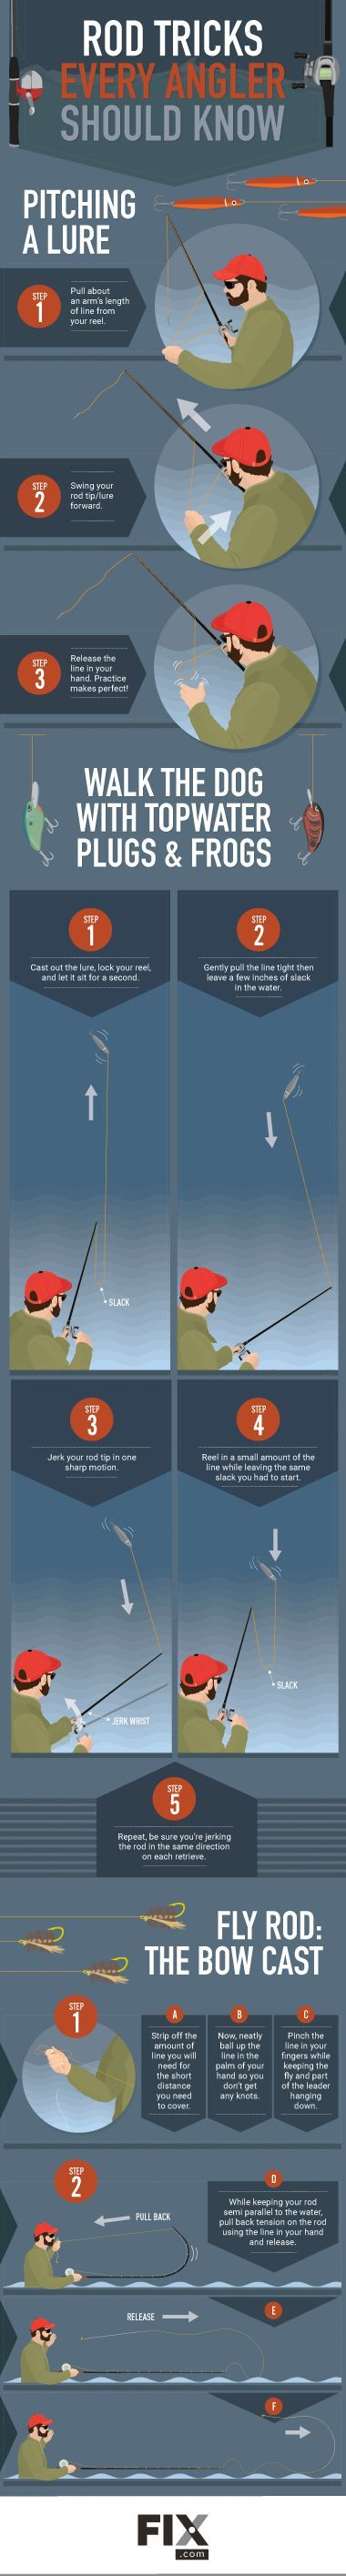 Fishing Rod Tricks For Tight Casts | http://Fix.com